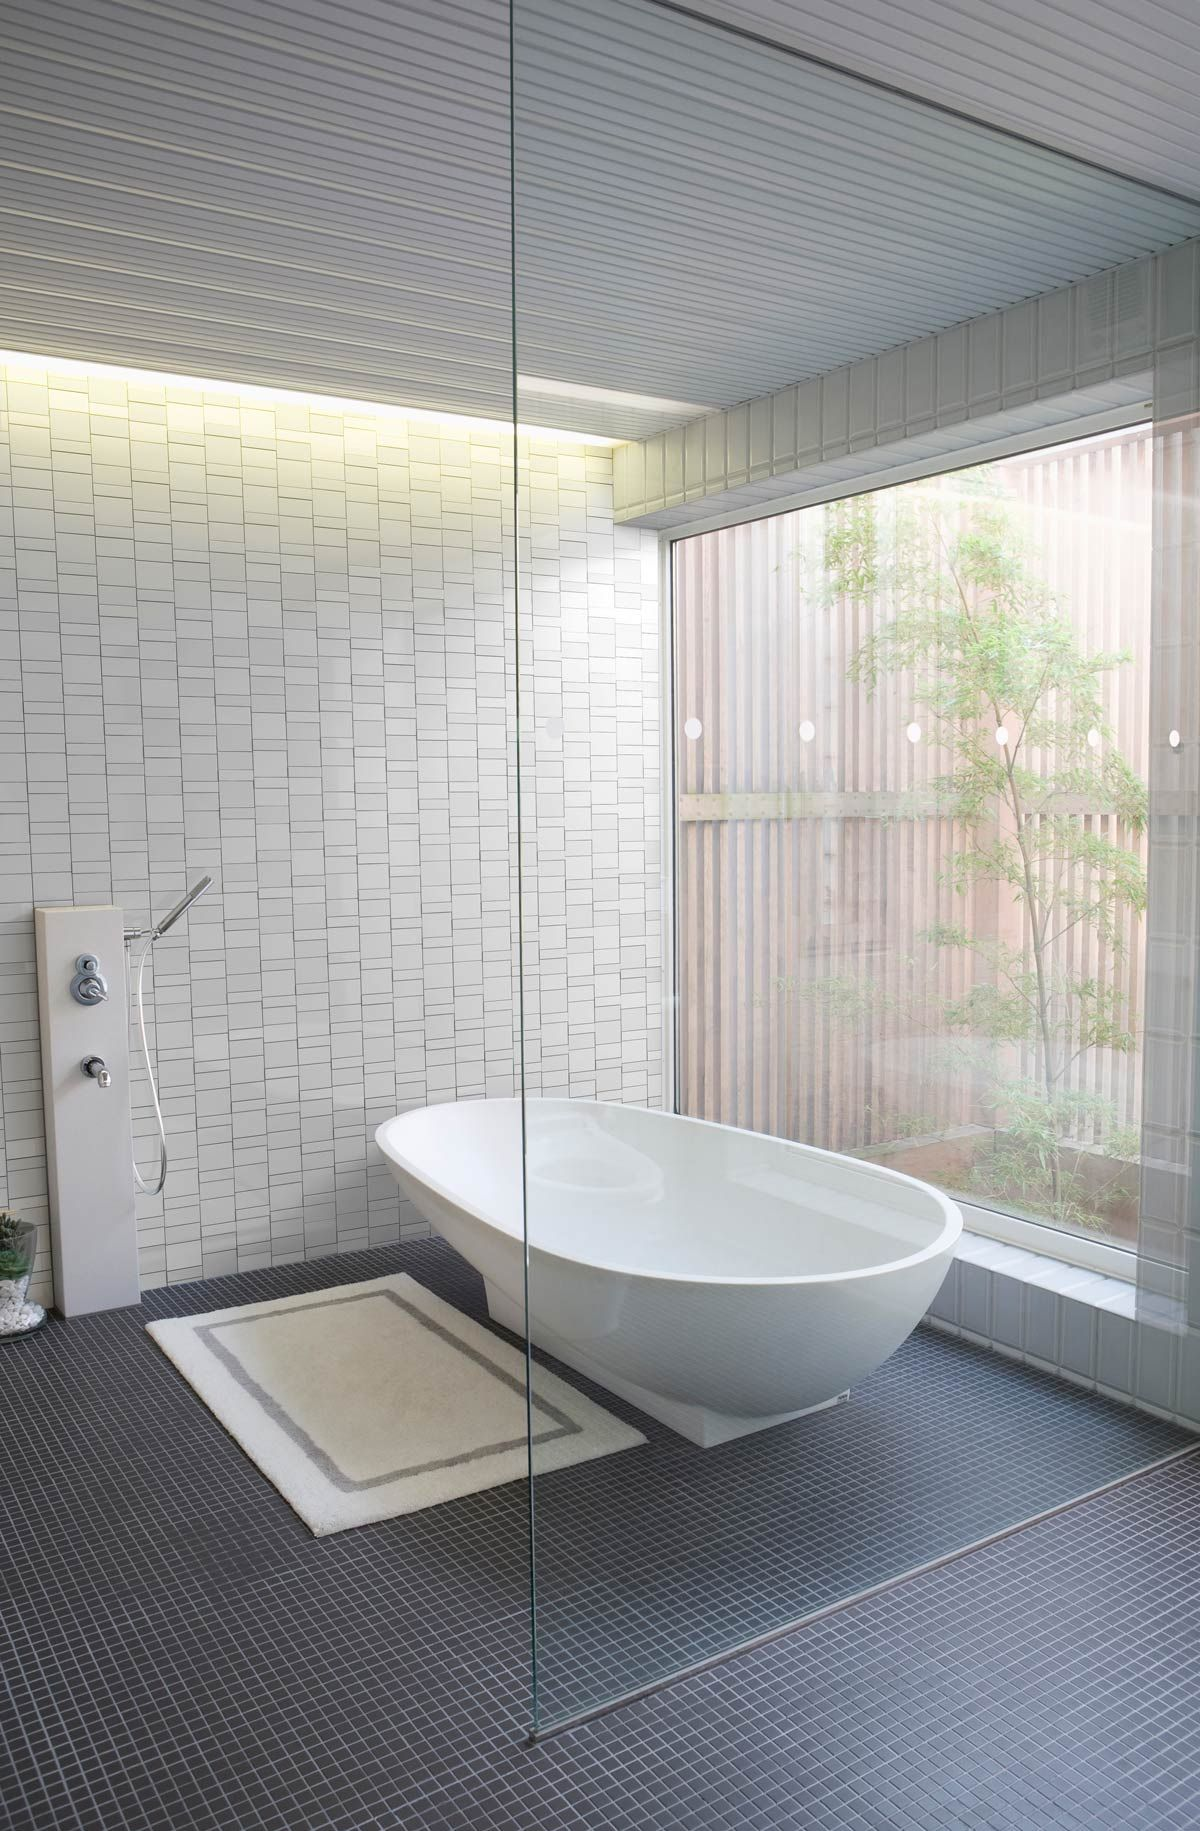 inax | format | white (matte) mosaic tiles from stone tile inc